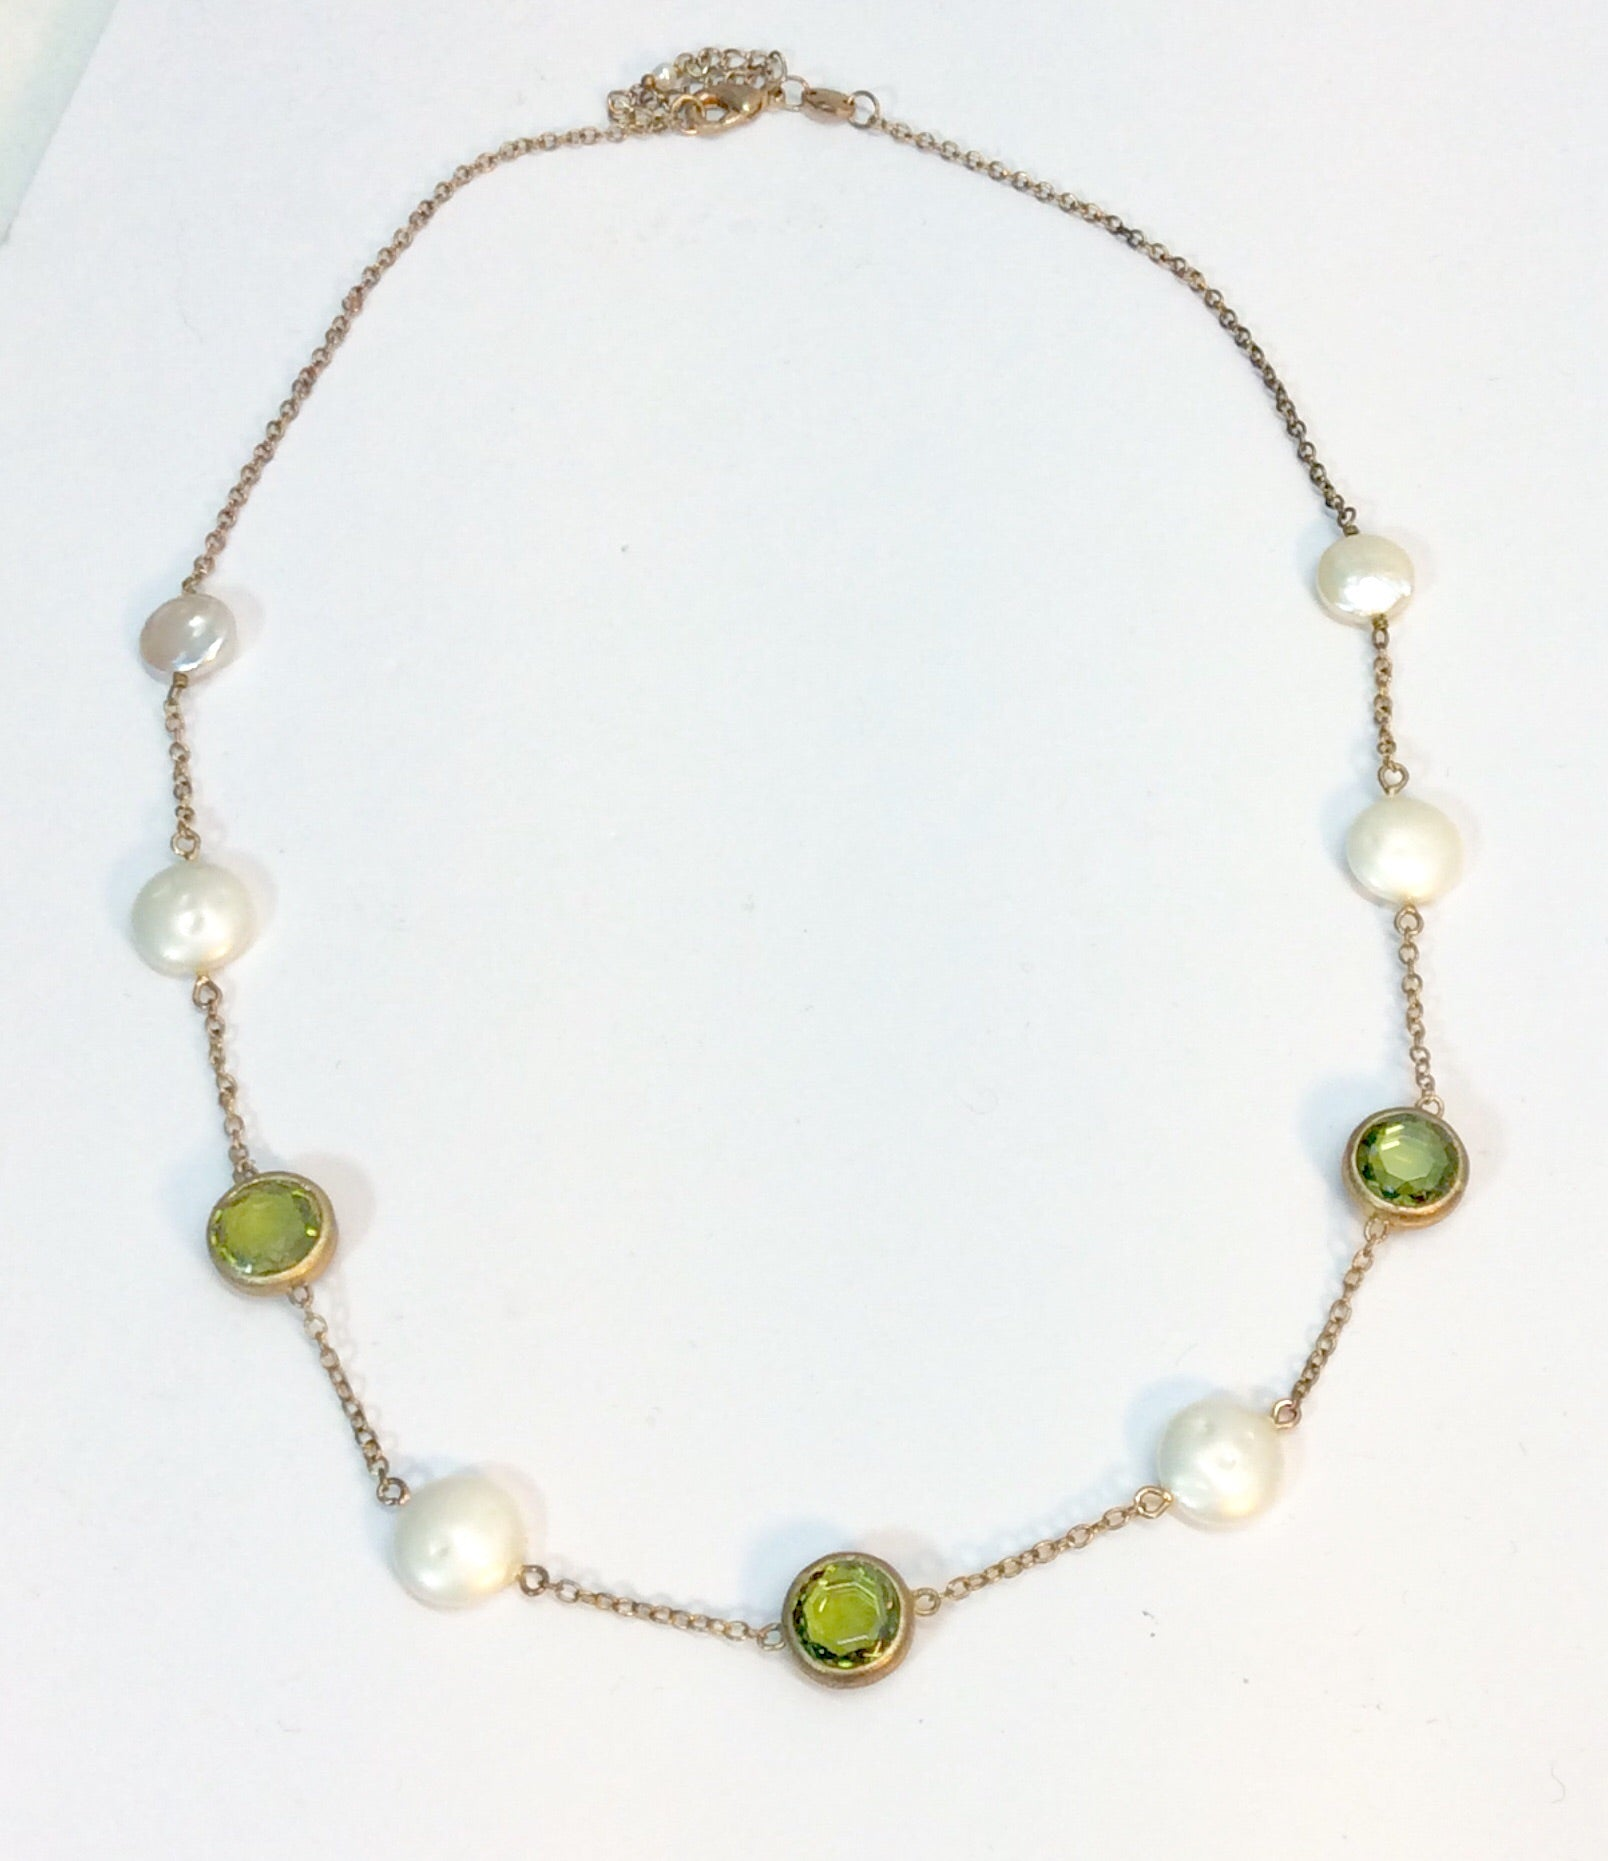 Feminine pearl and peridot stone necklace